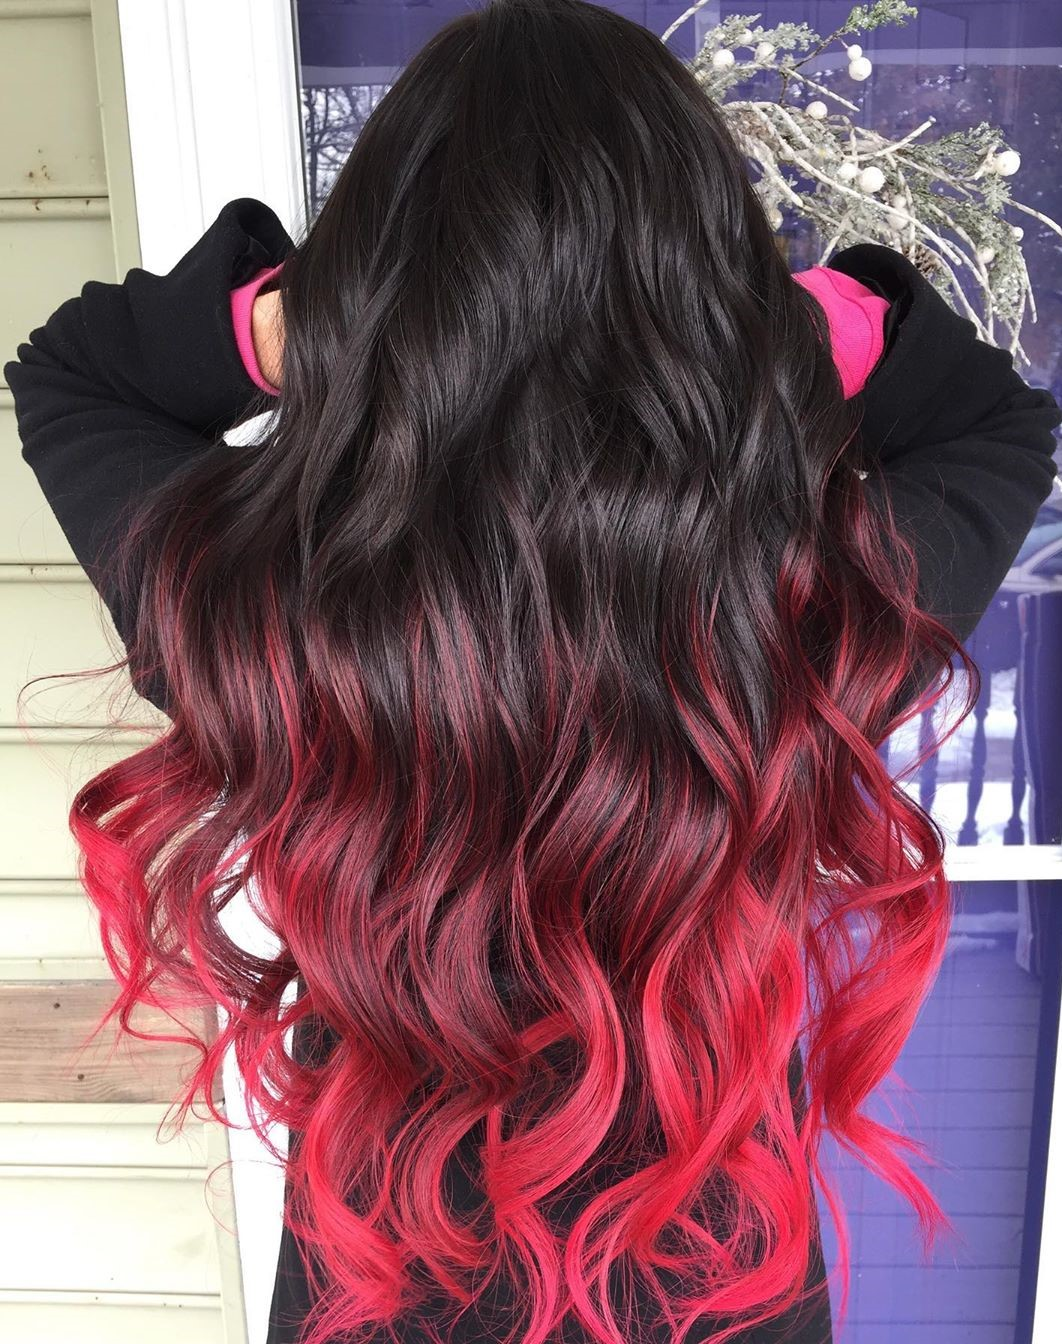 Black Hair with Bright Pink Ends